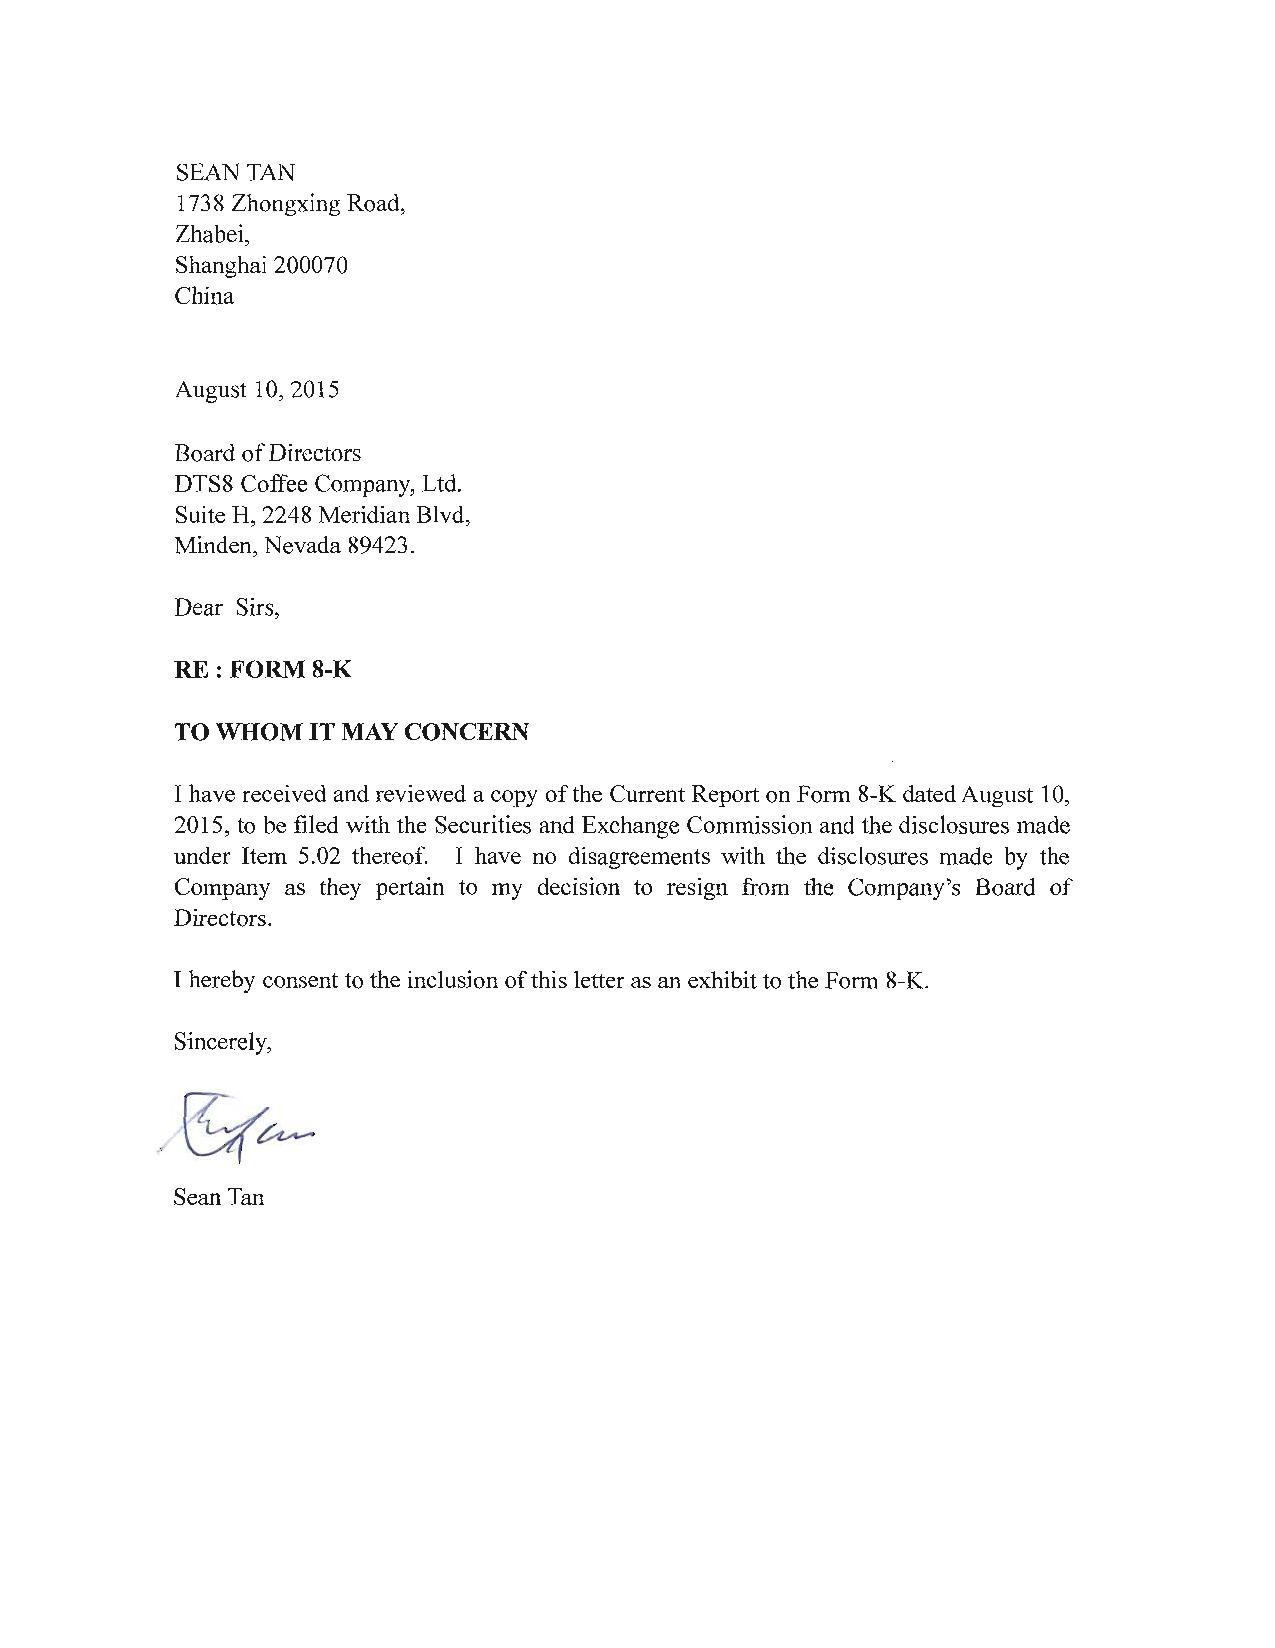 dts coffee company form k ex letter on form 8 k ex 17 letter on resignation of officer and director 11 2015